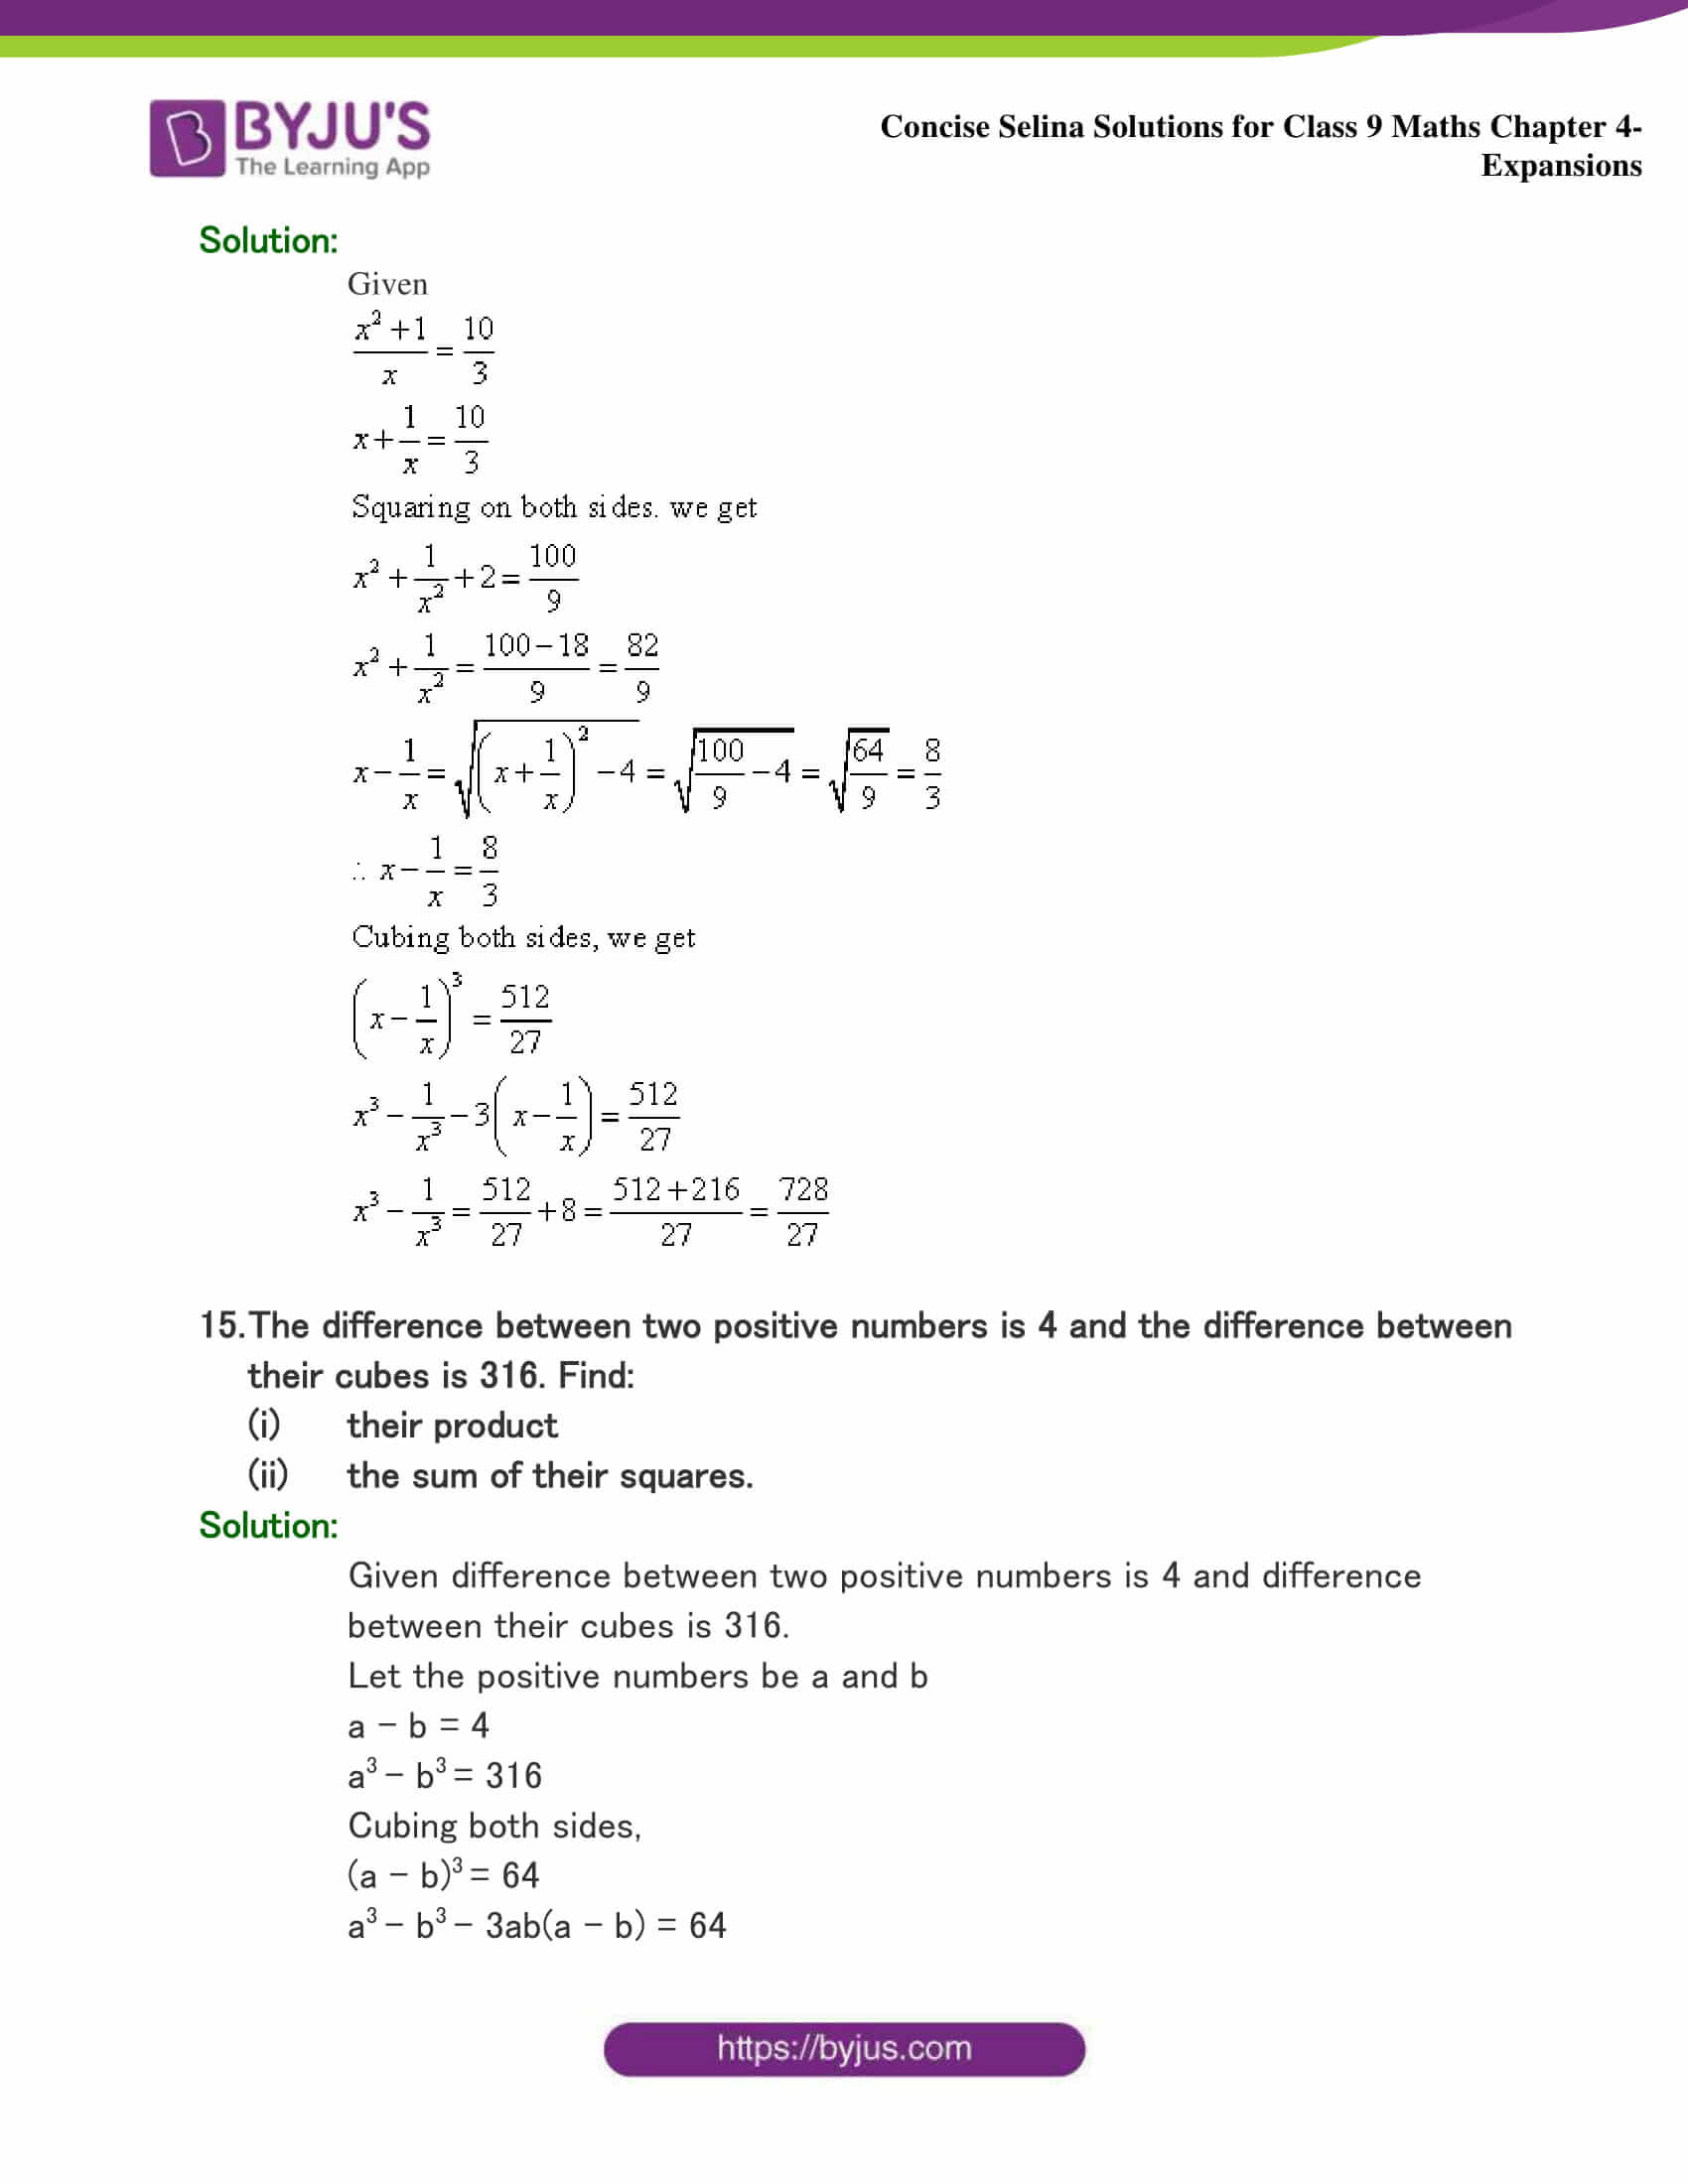 Selina Solutions Class 9 Maths Chapter 4 Expansions part 39